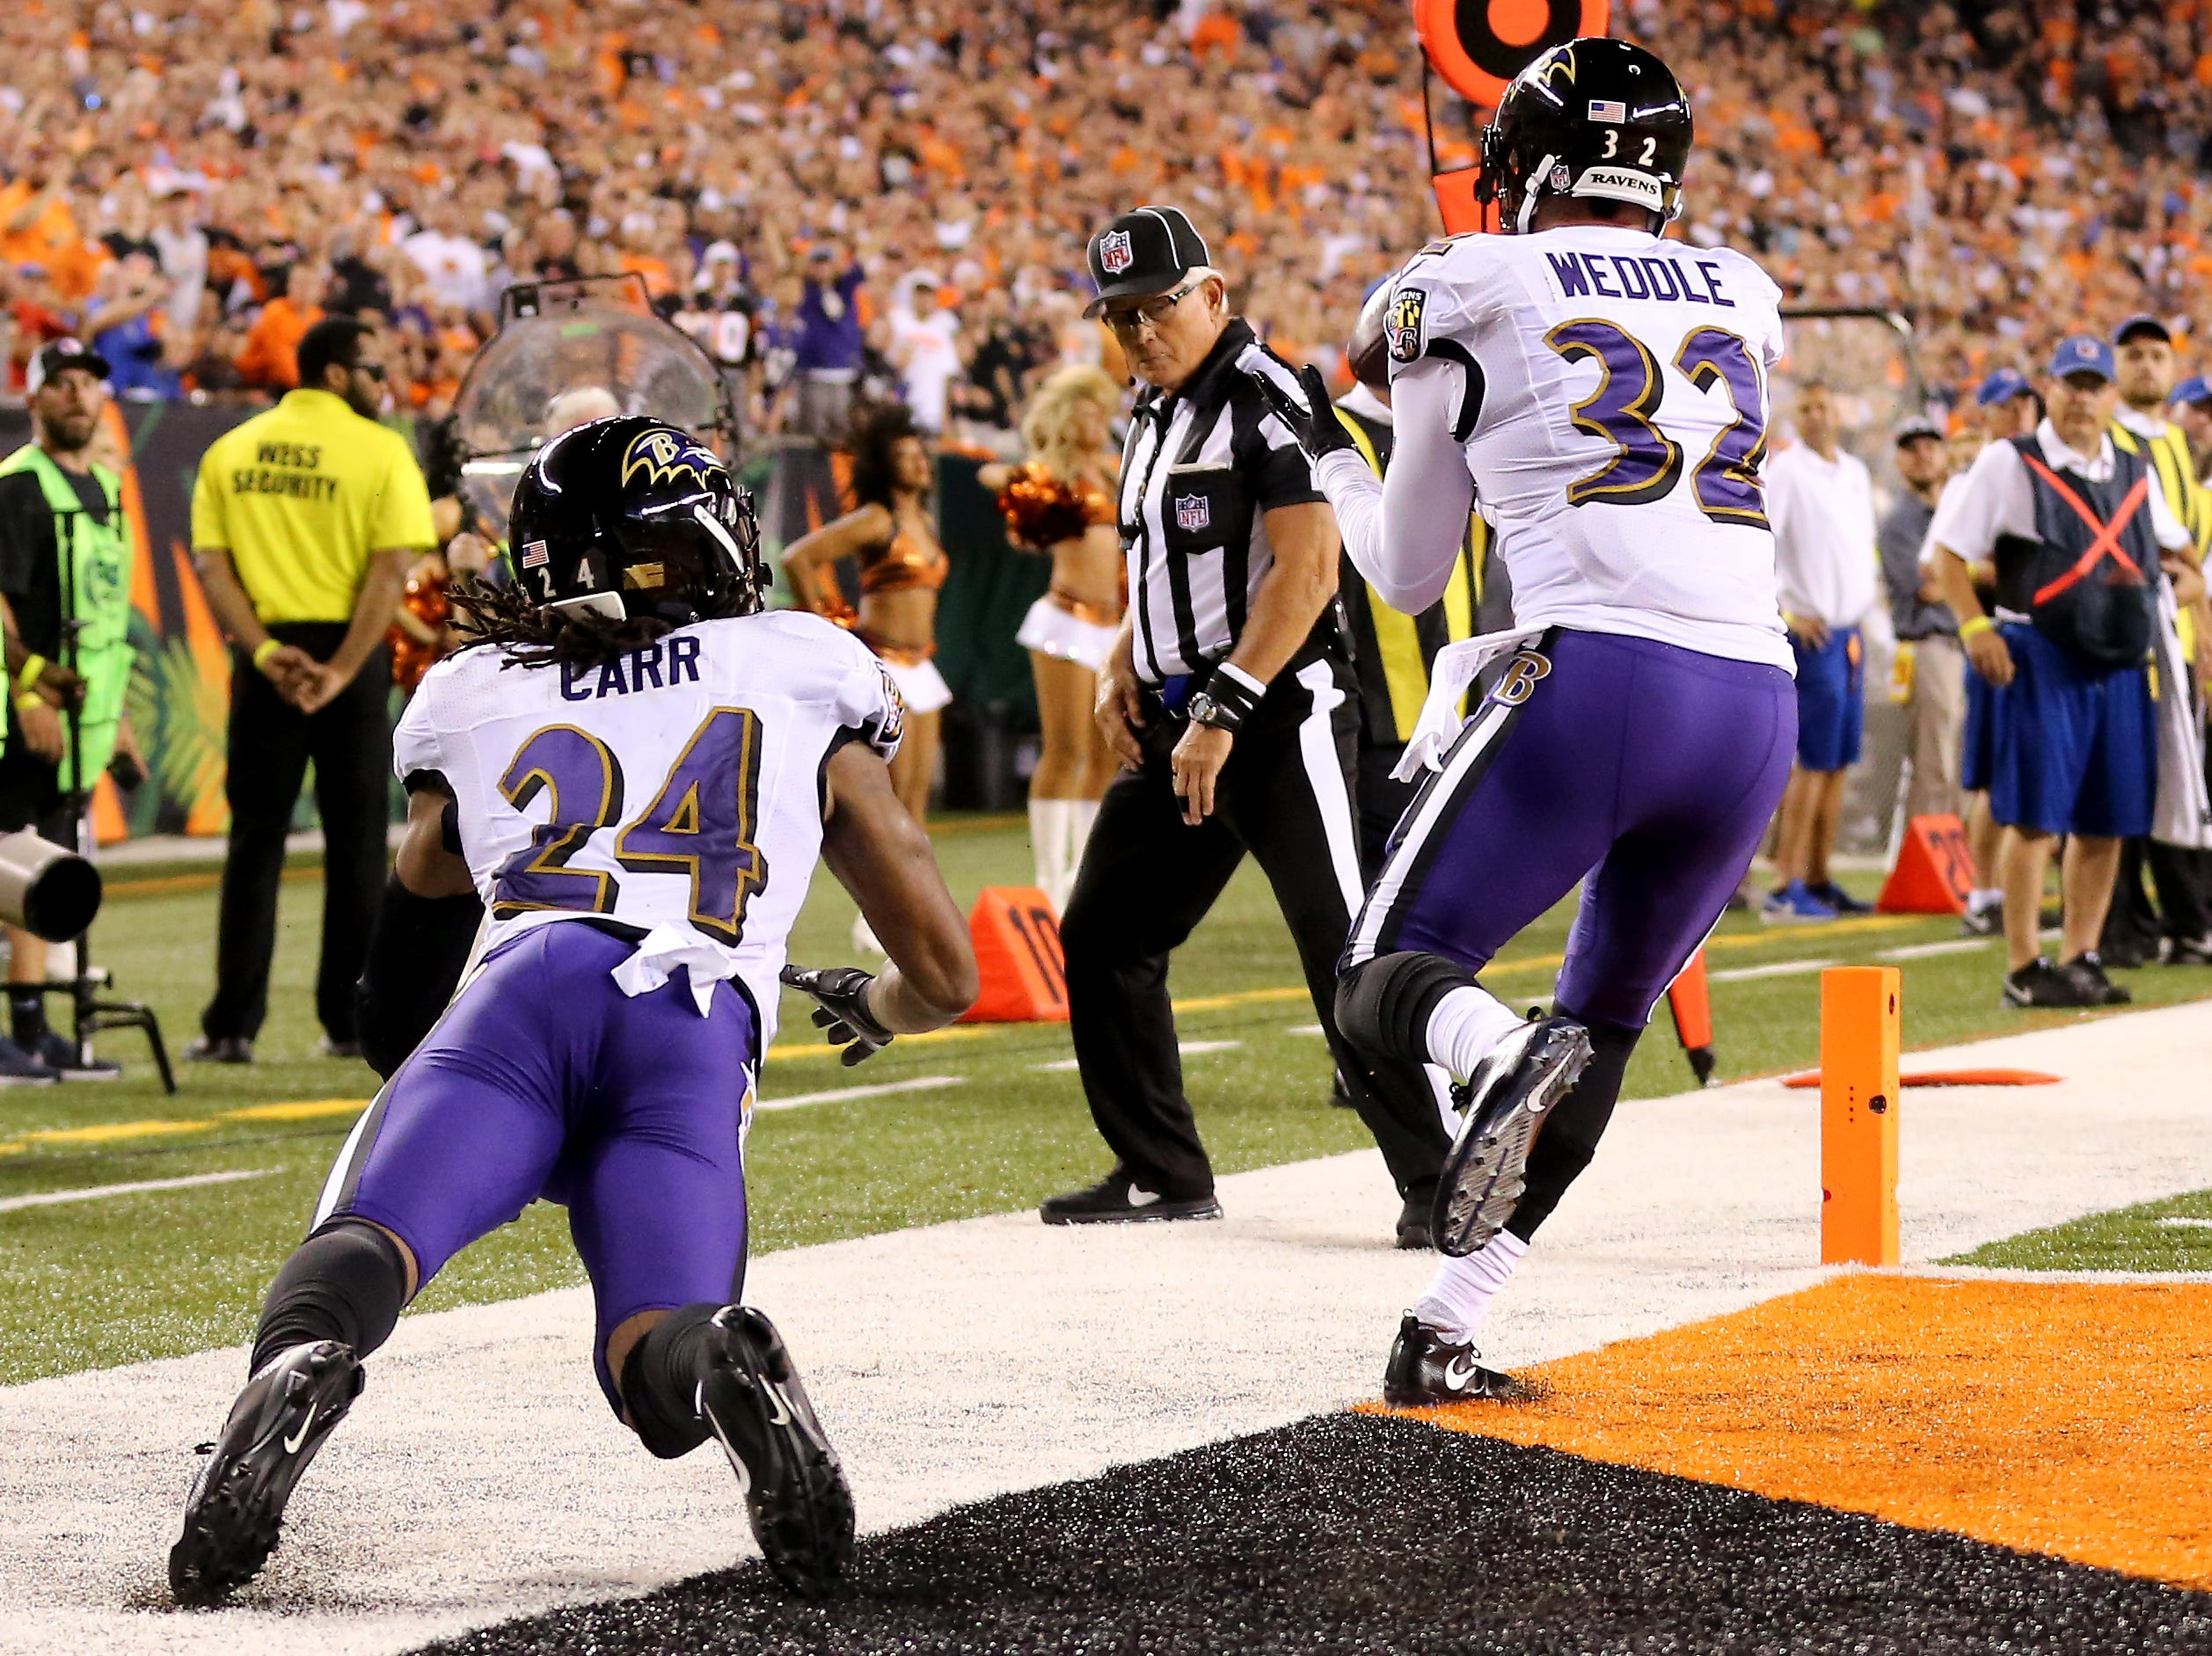 Baltimore Ravens defensive back Eric Weddle (32) tried to stay inbounds after intercepting a pass in the first quarter during the Week 2 NFL football game between the Baltimore Ravens and the Cincinnati Bengals, Thursday, Sept. 13, 2018, Paul Brown Stadium in Cincinnati.